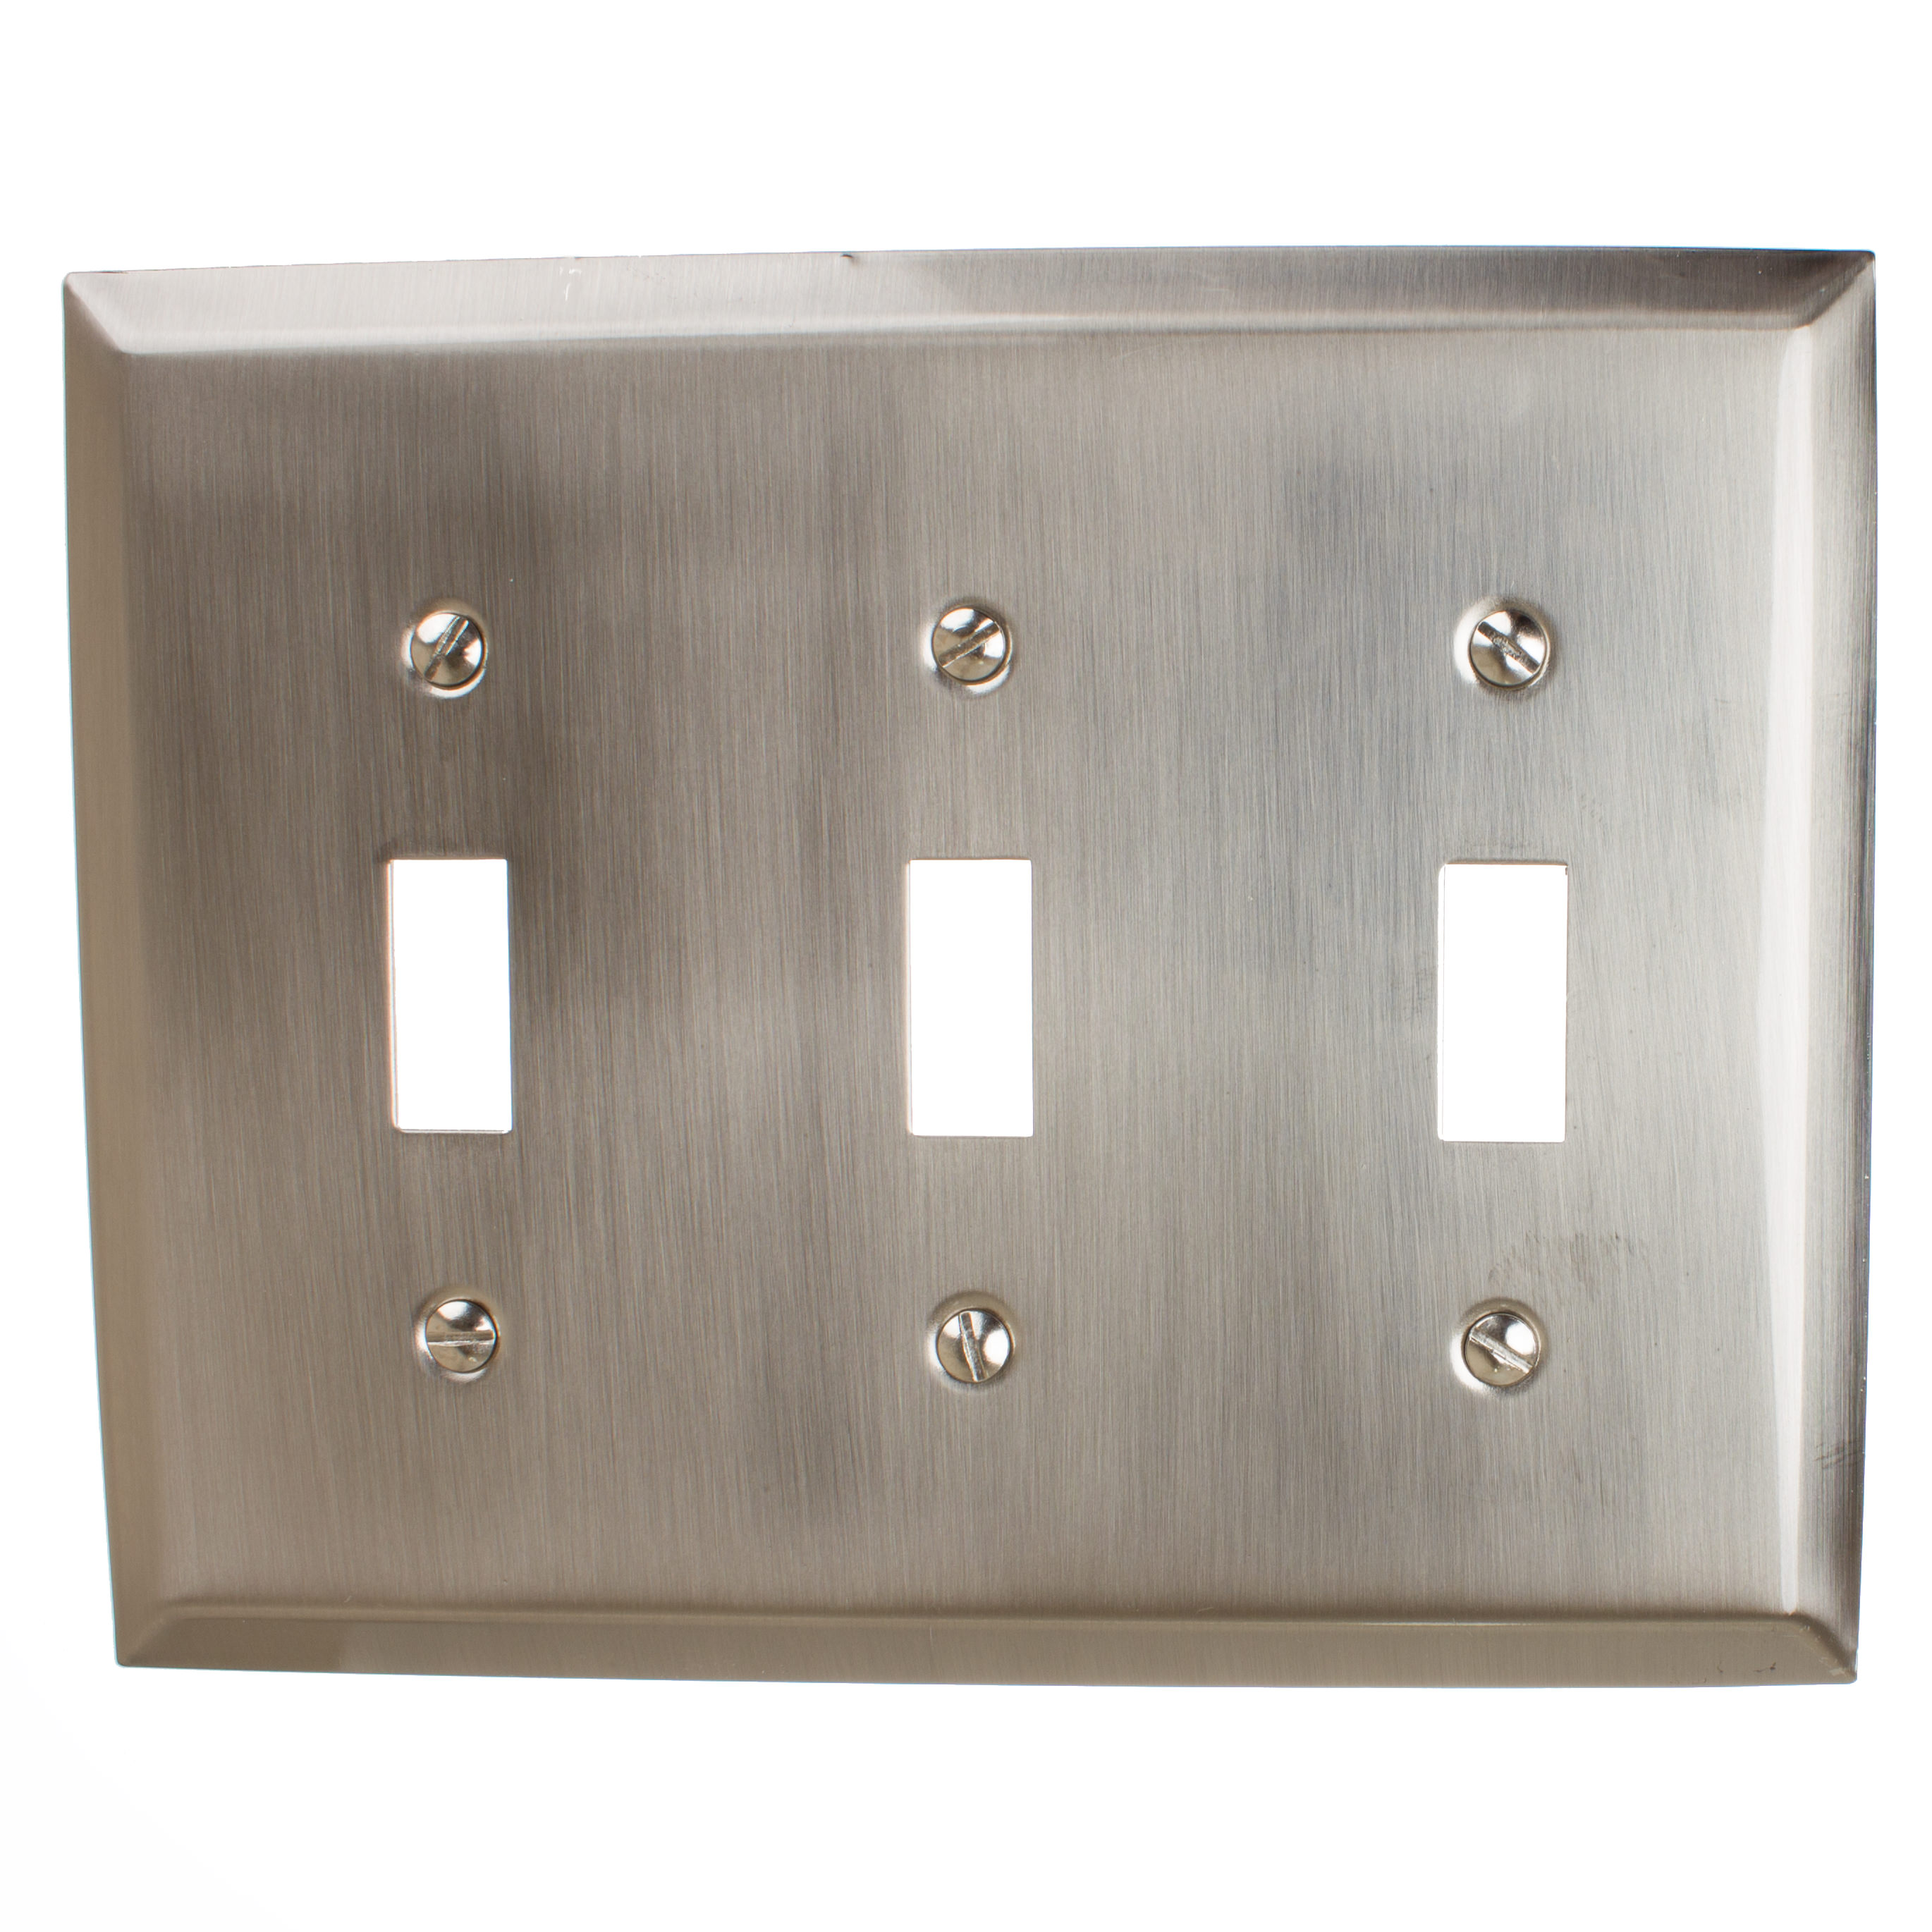 GlideRite Hardware Triple Toggle Light Switch 3-Gang Wall Plate Cover, Brushed Nickel